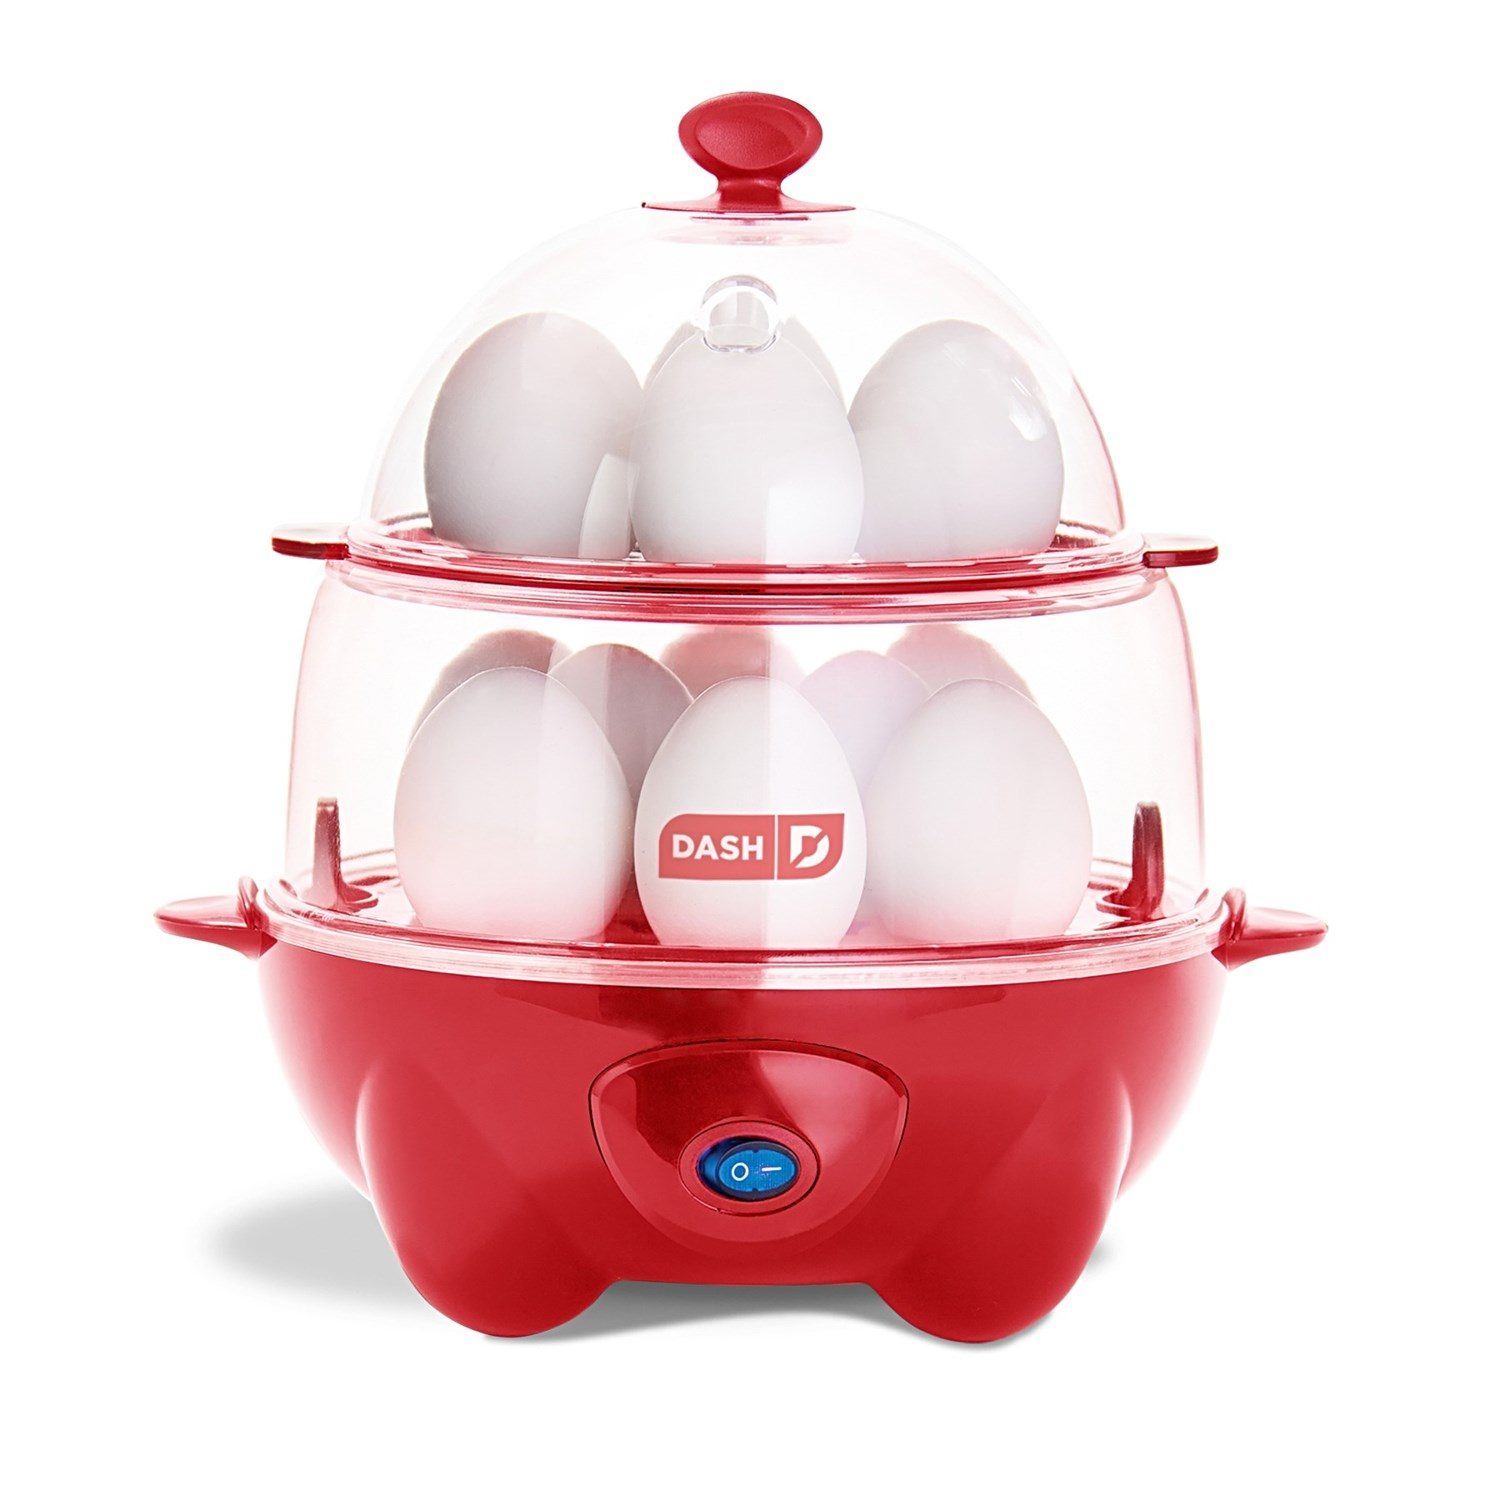 dash kitchen appliances waste baskets electric egg cooker deluxe save 50